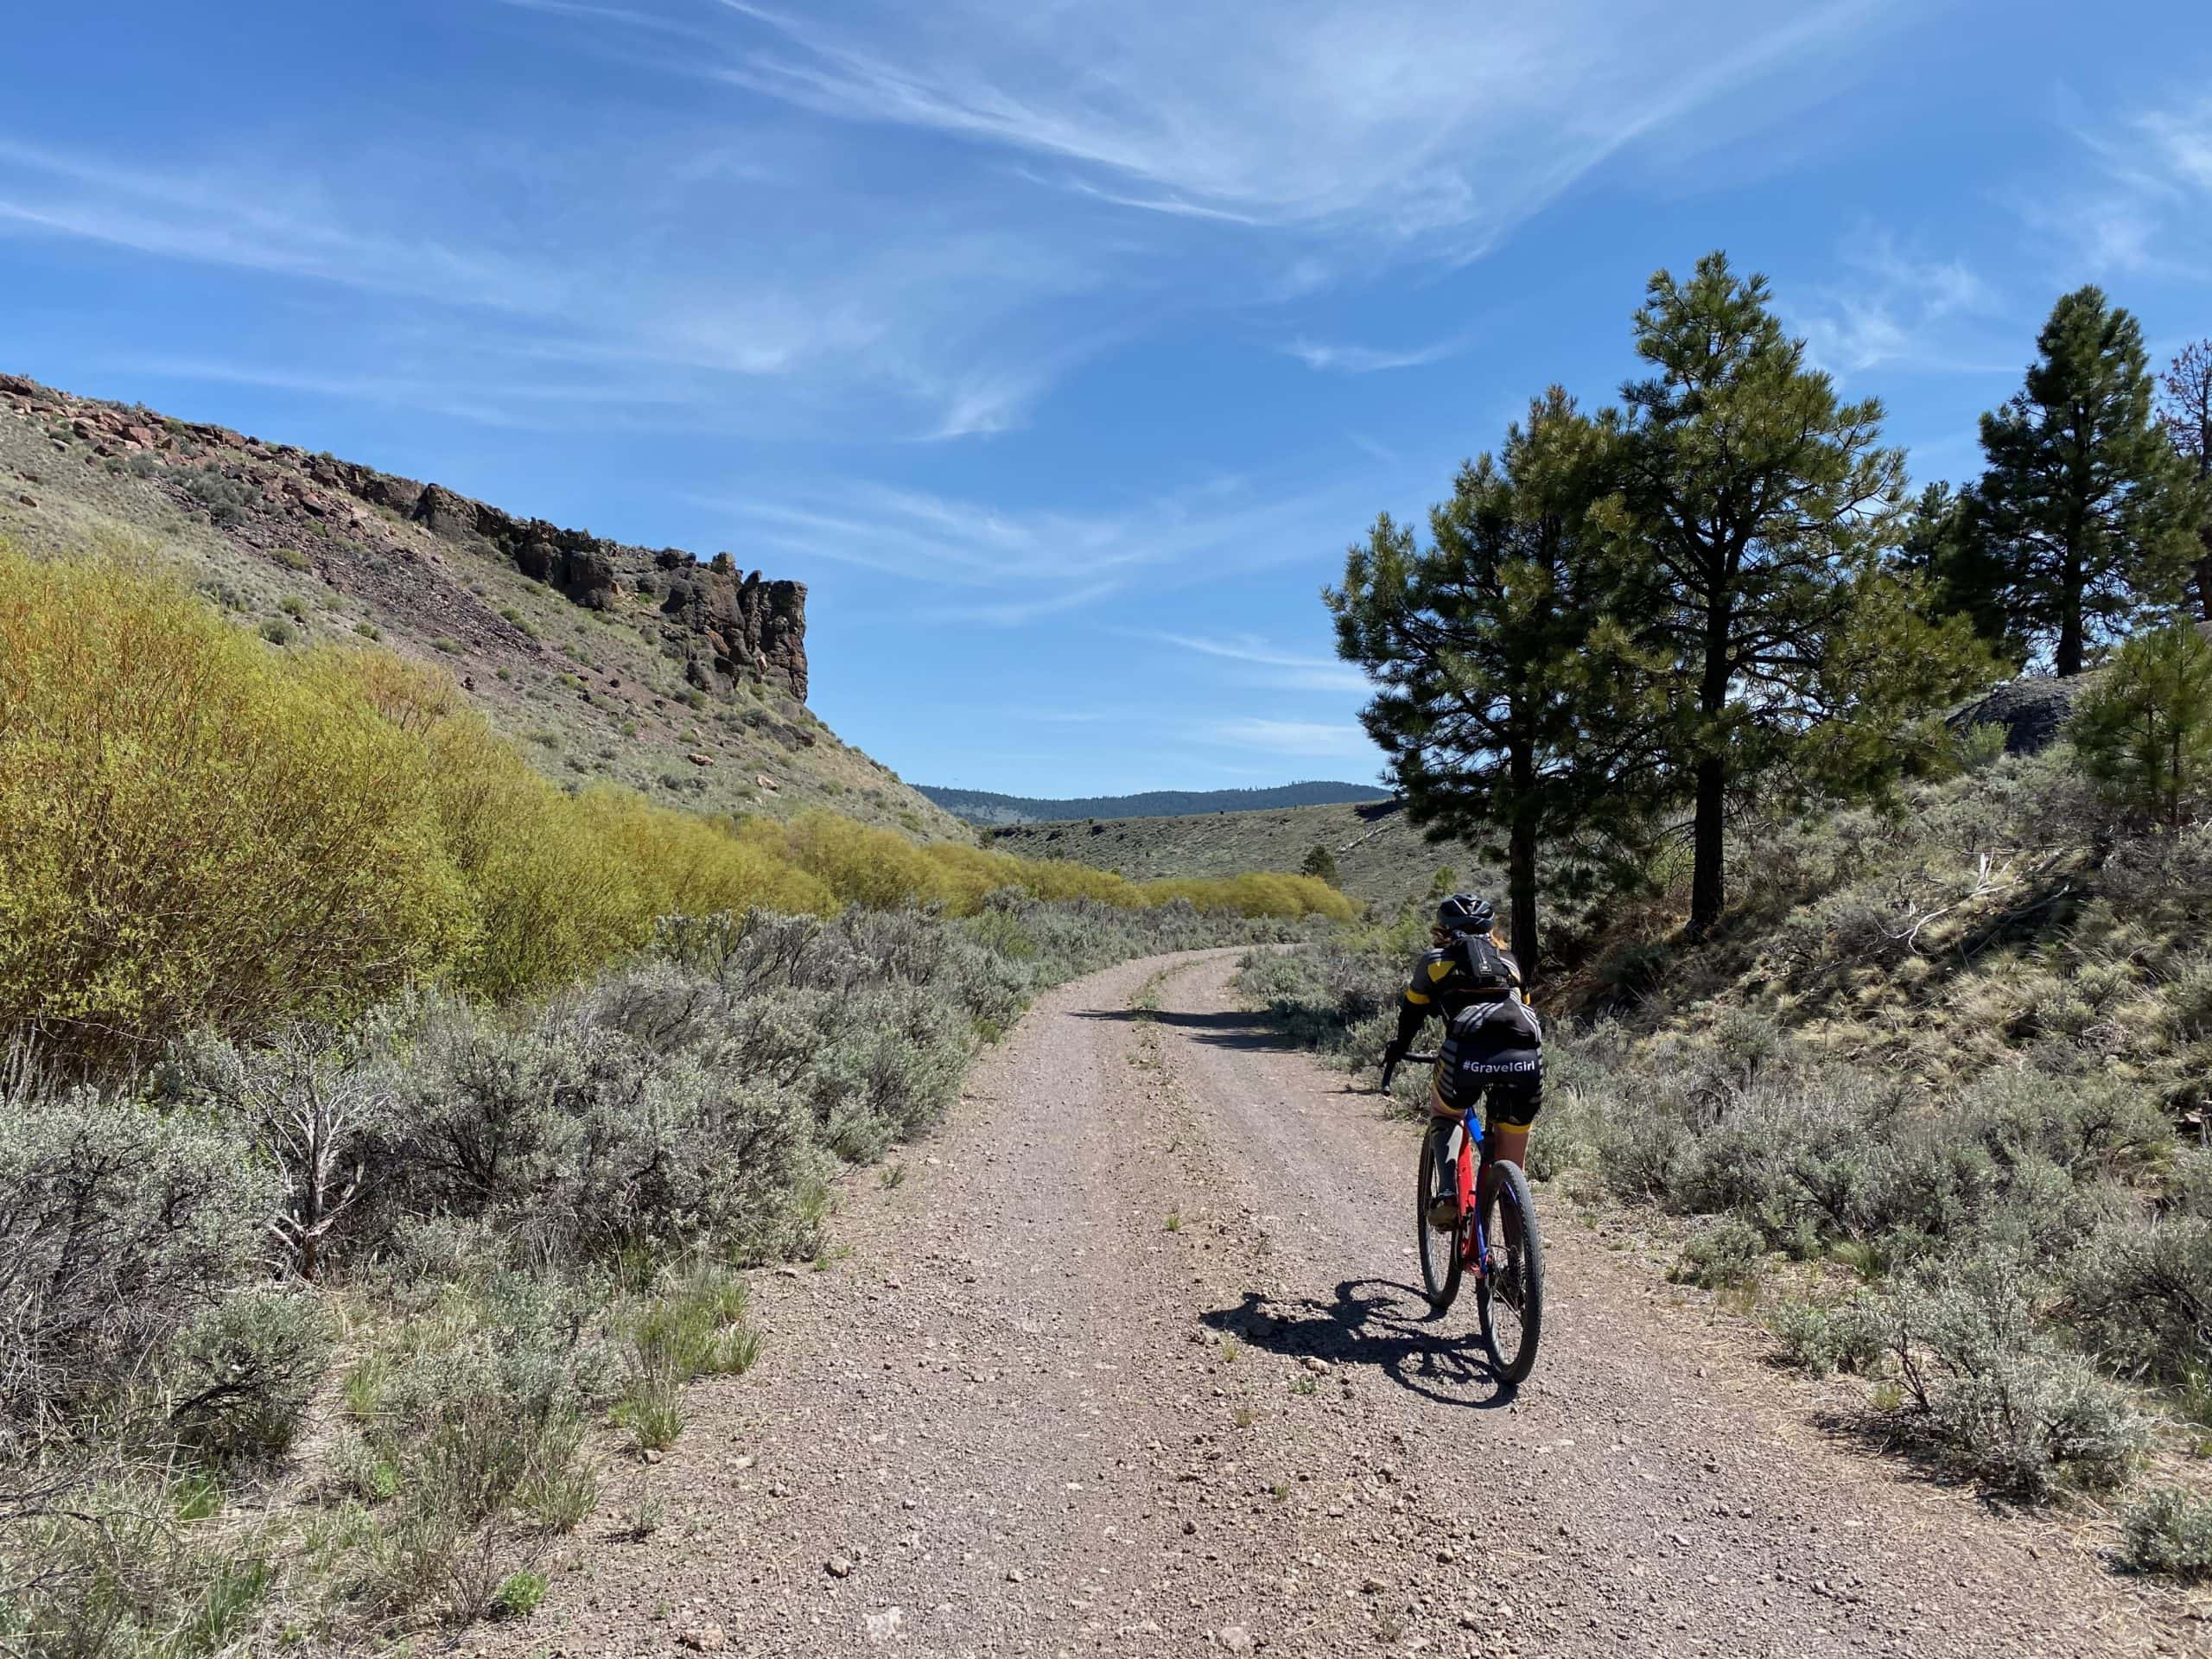 Cyclist riding forest service road through pseudo canyon along Dairy Creek in the Ochoco National Forest.